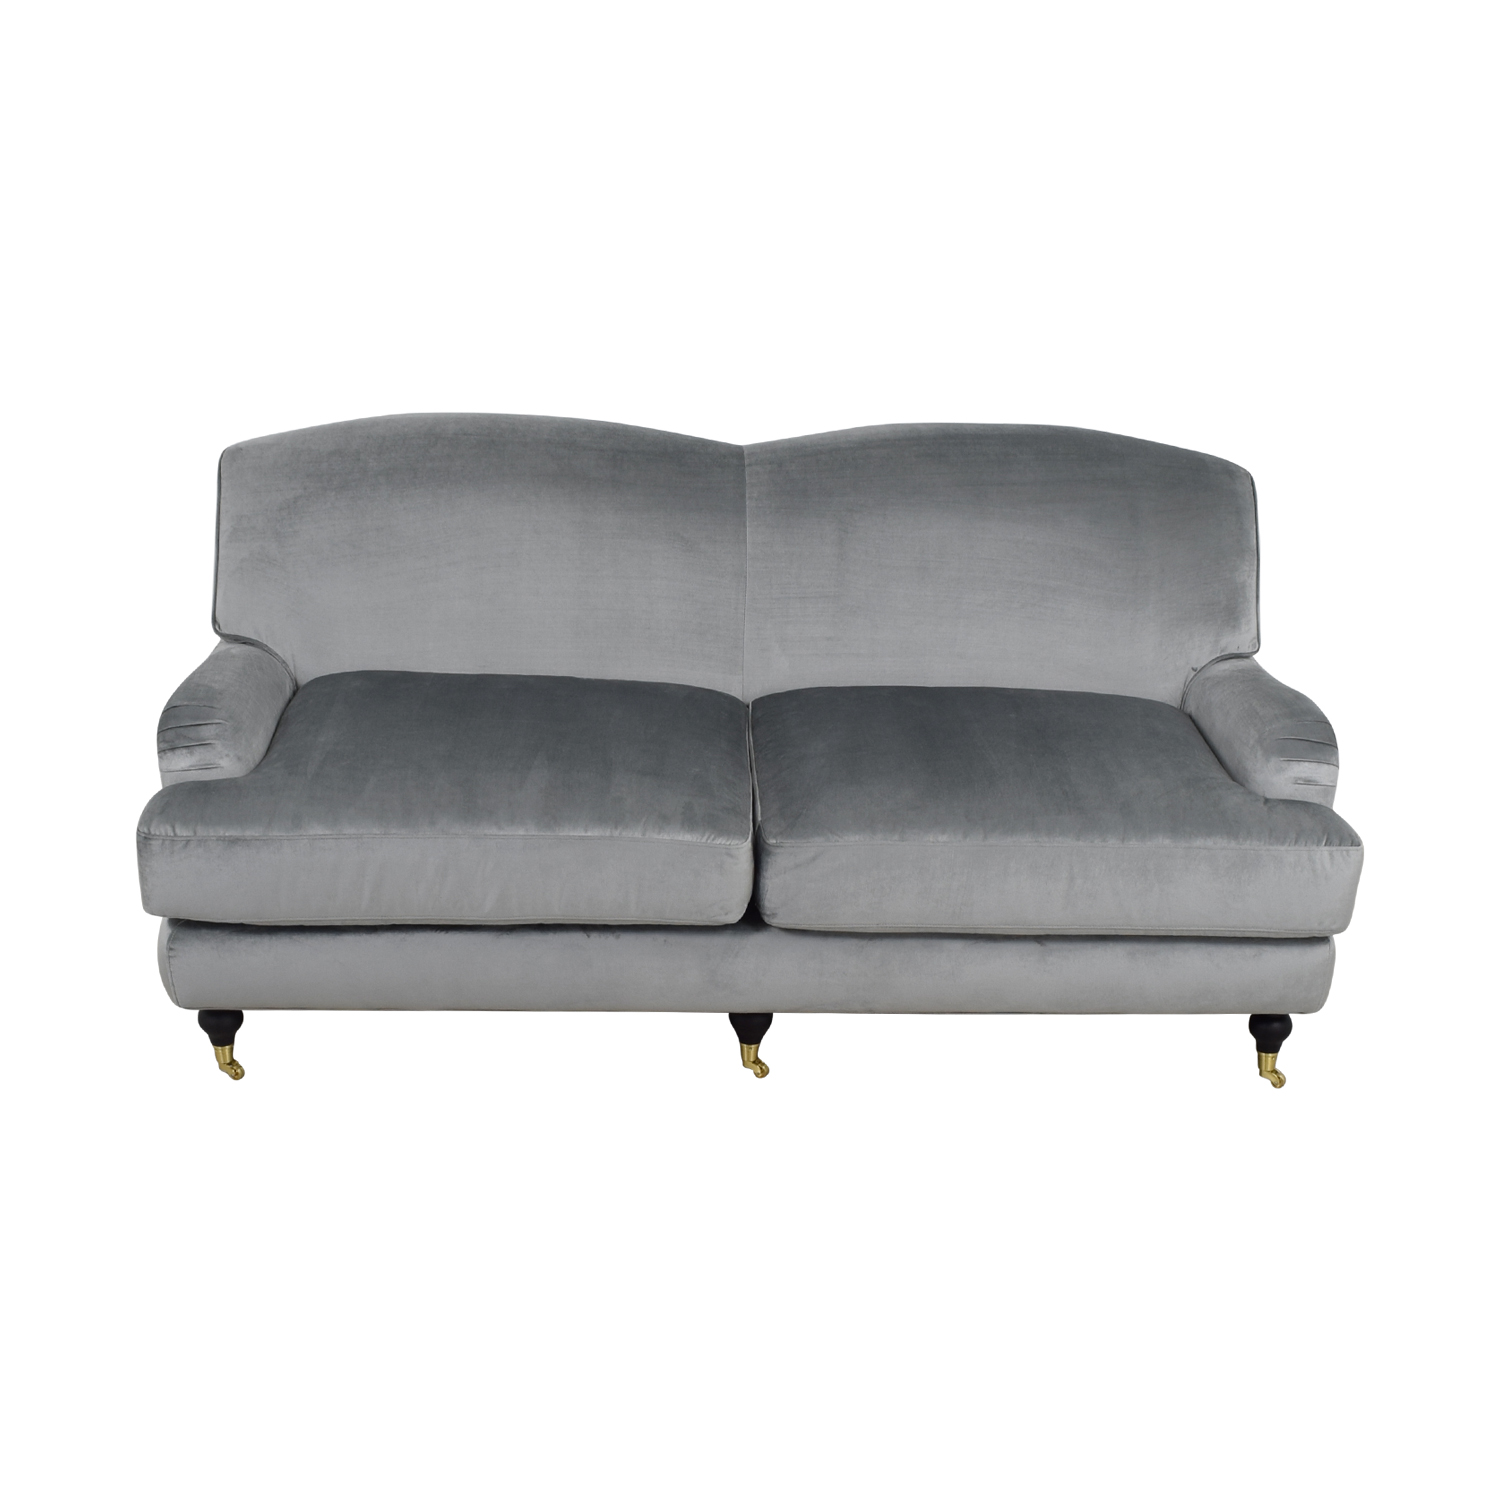 Interior Define Interior Define Rose Metallic Silver Sofa price